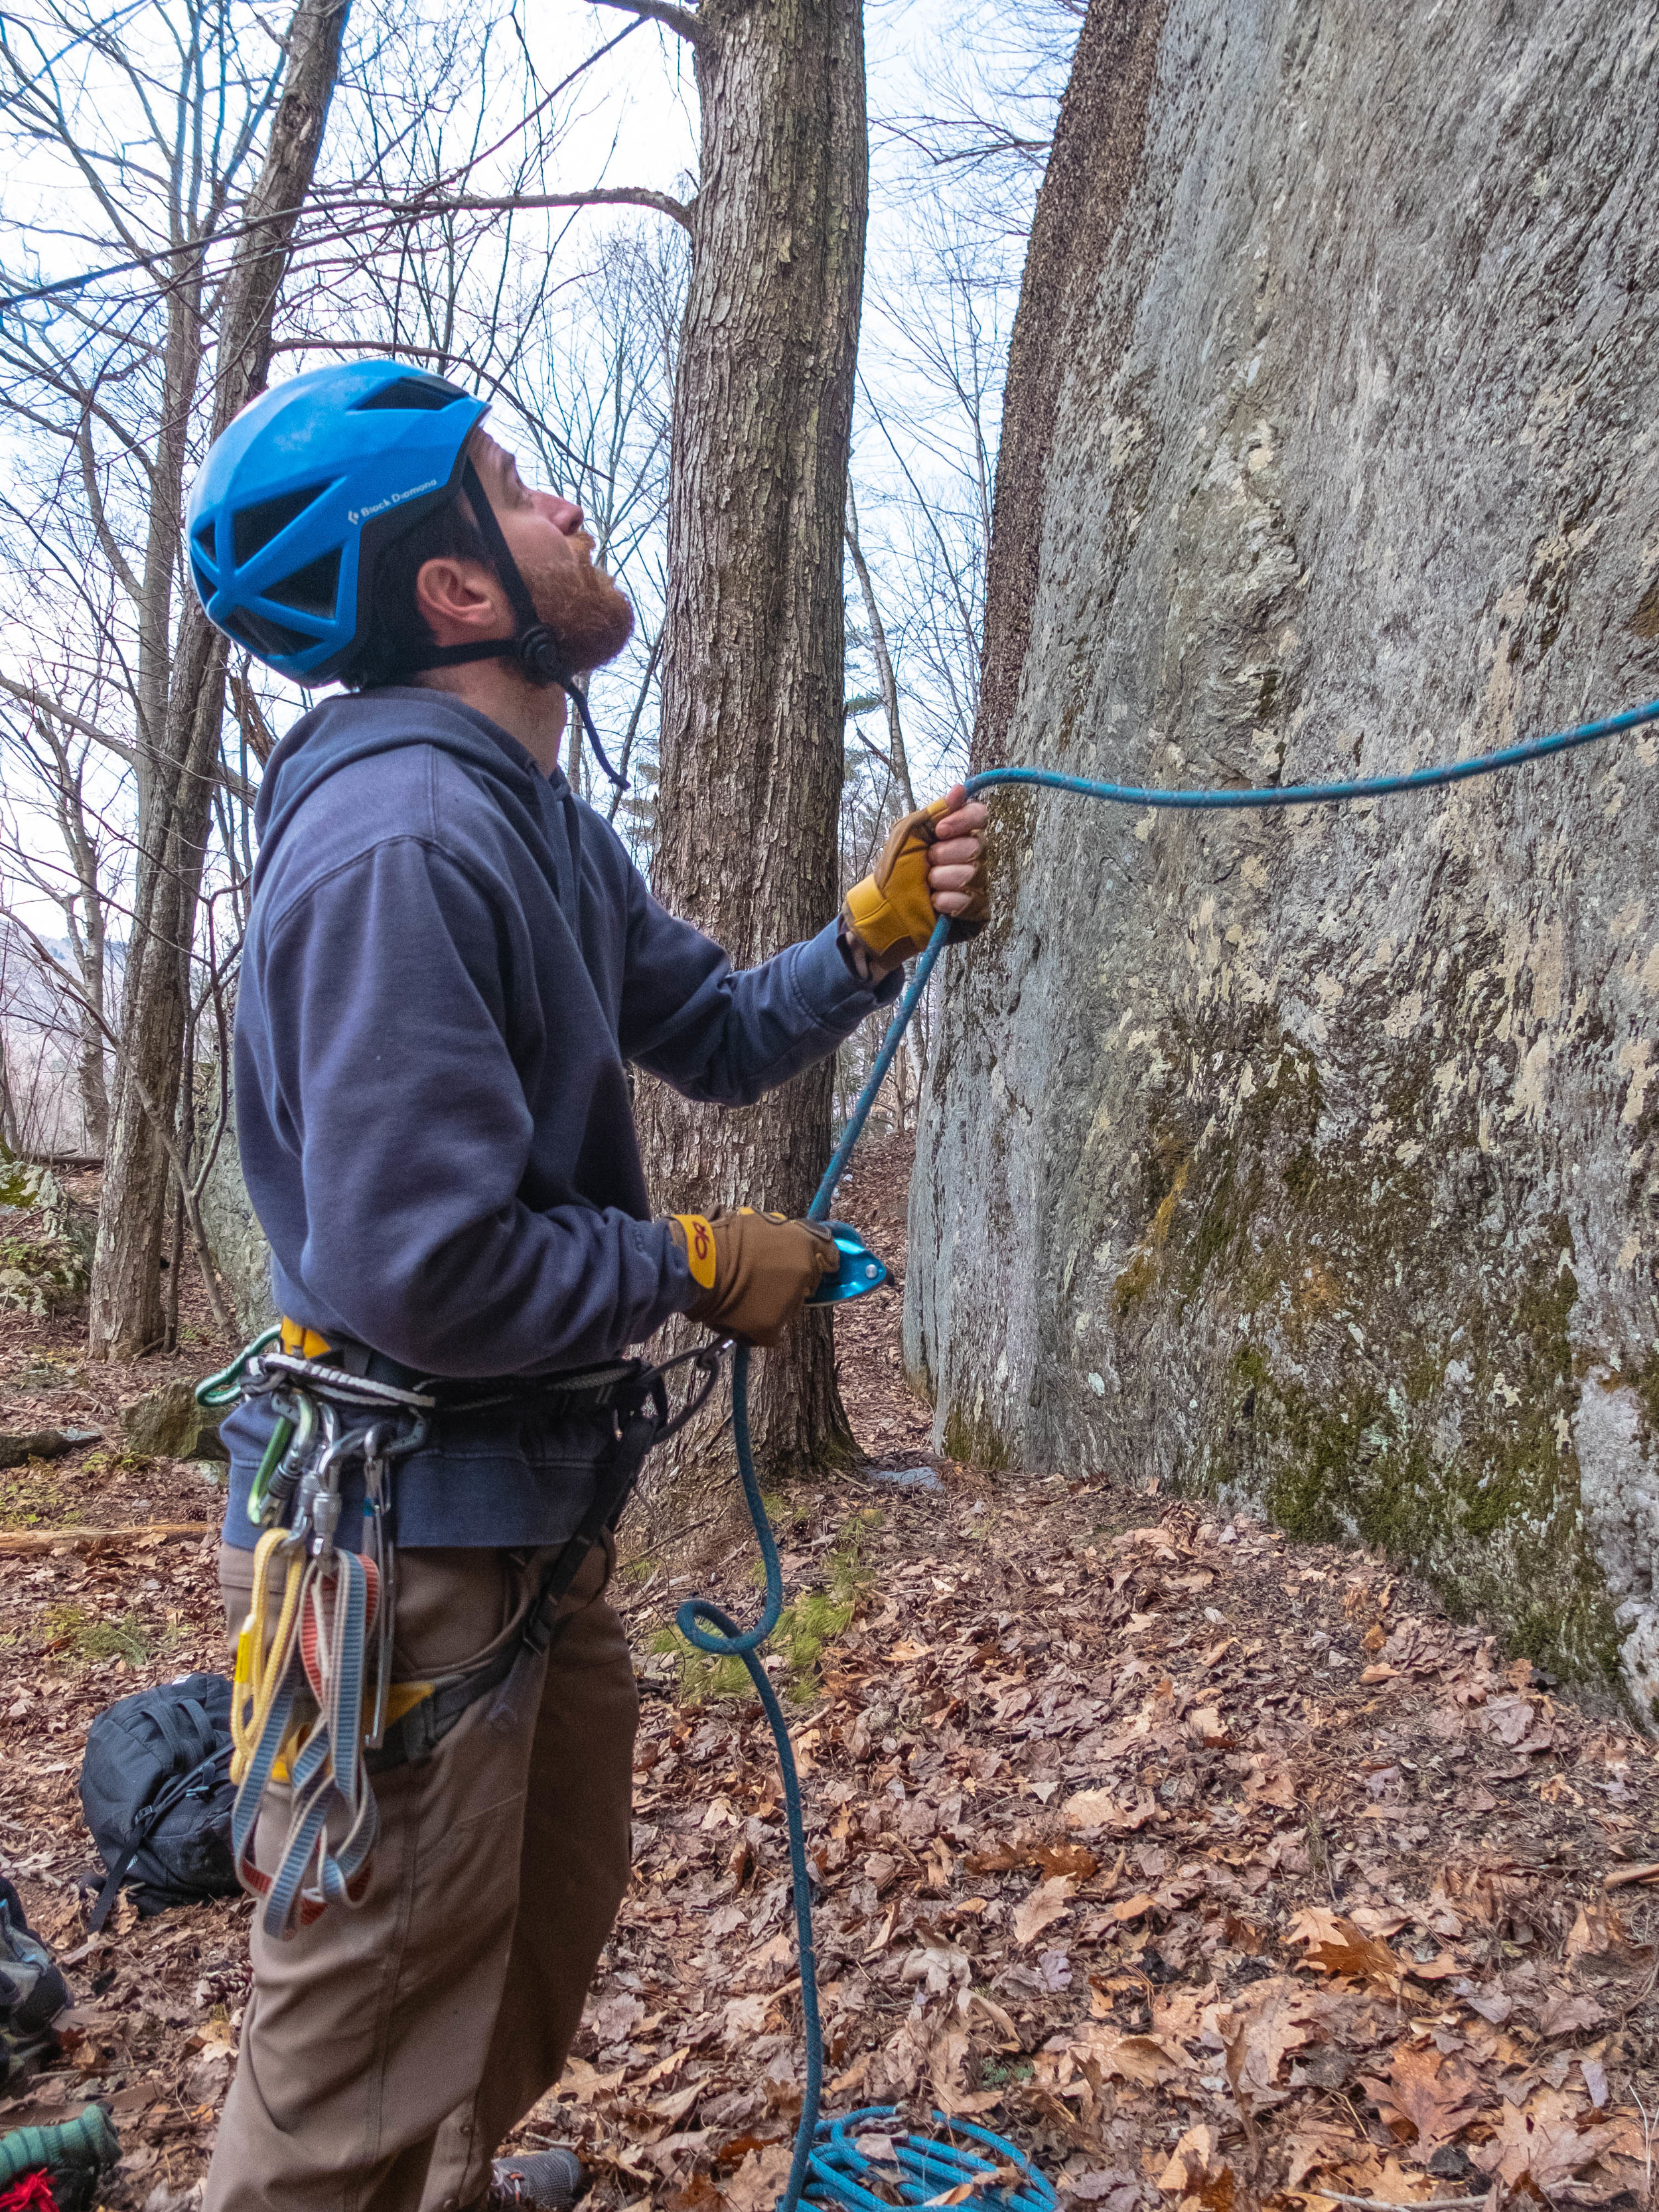 Giving slack with the Fossil Rock Gloves